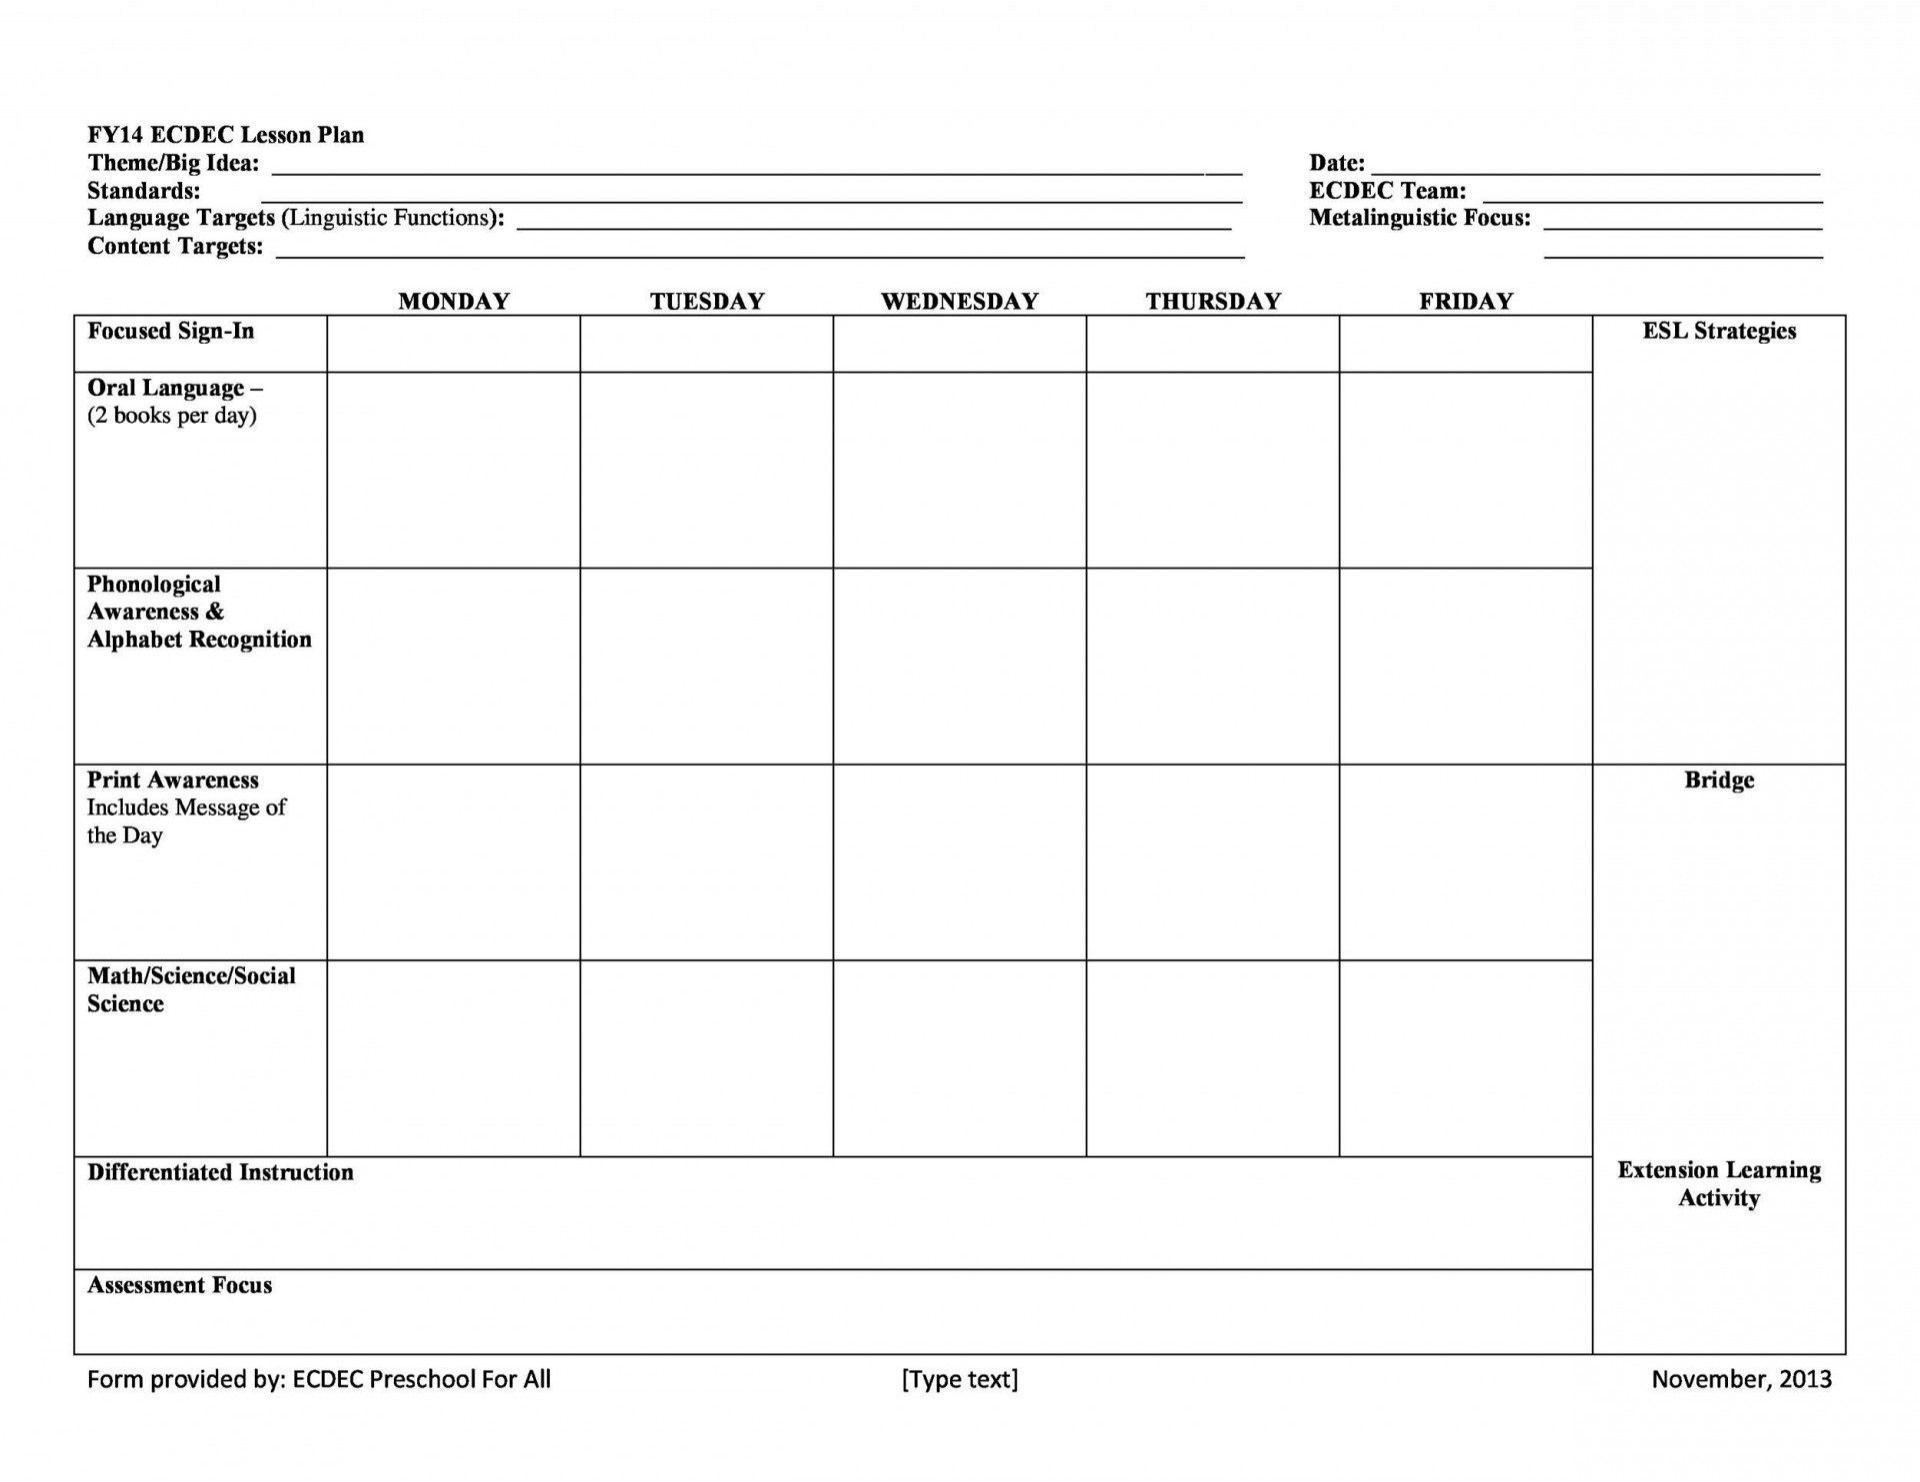 009 Excellent Lesson Plan Template Excel Free Photo 1920